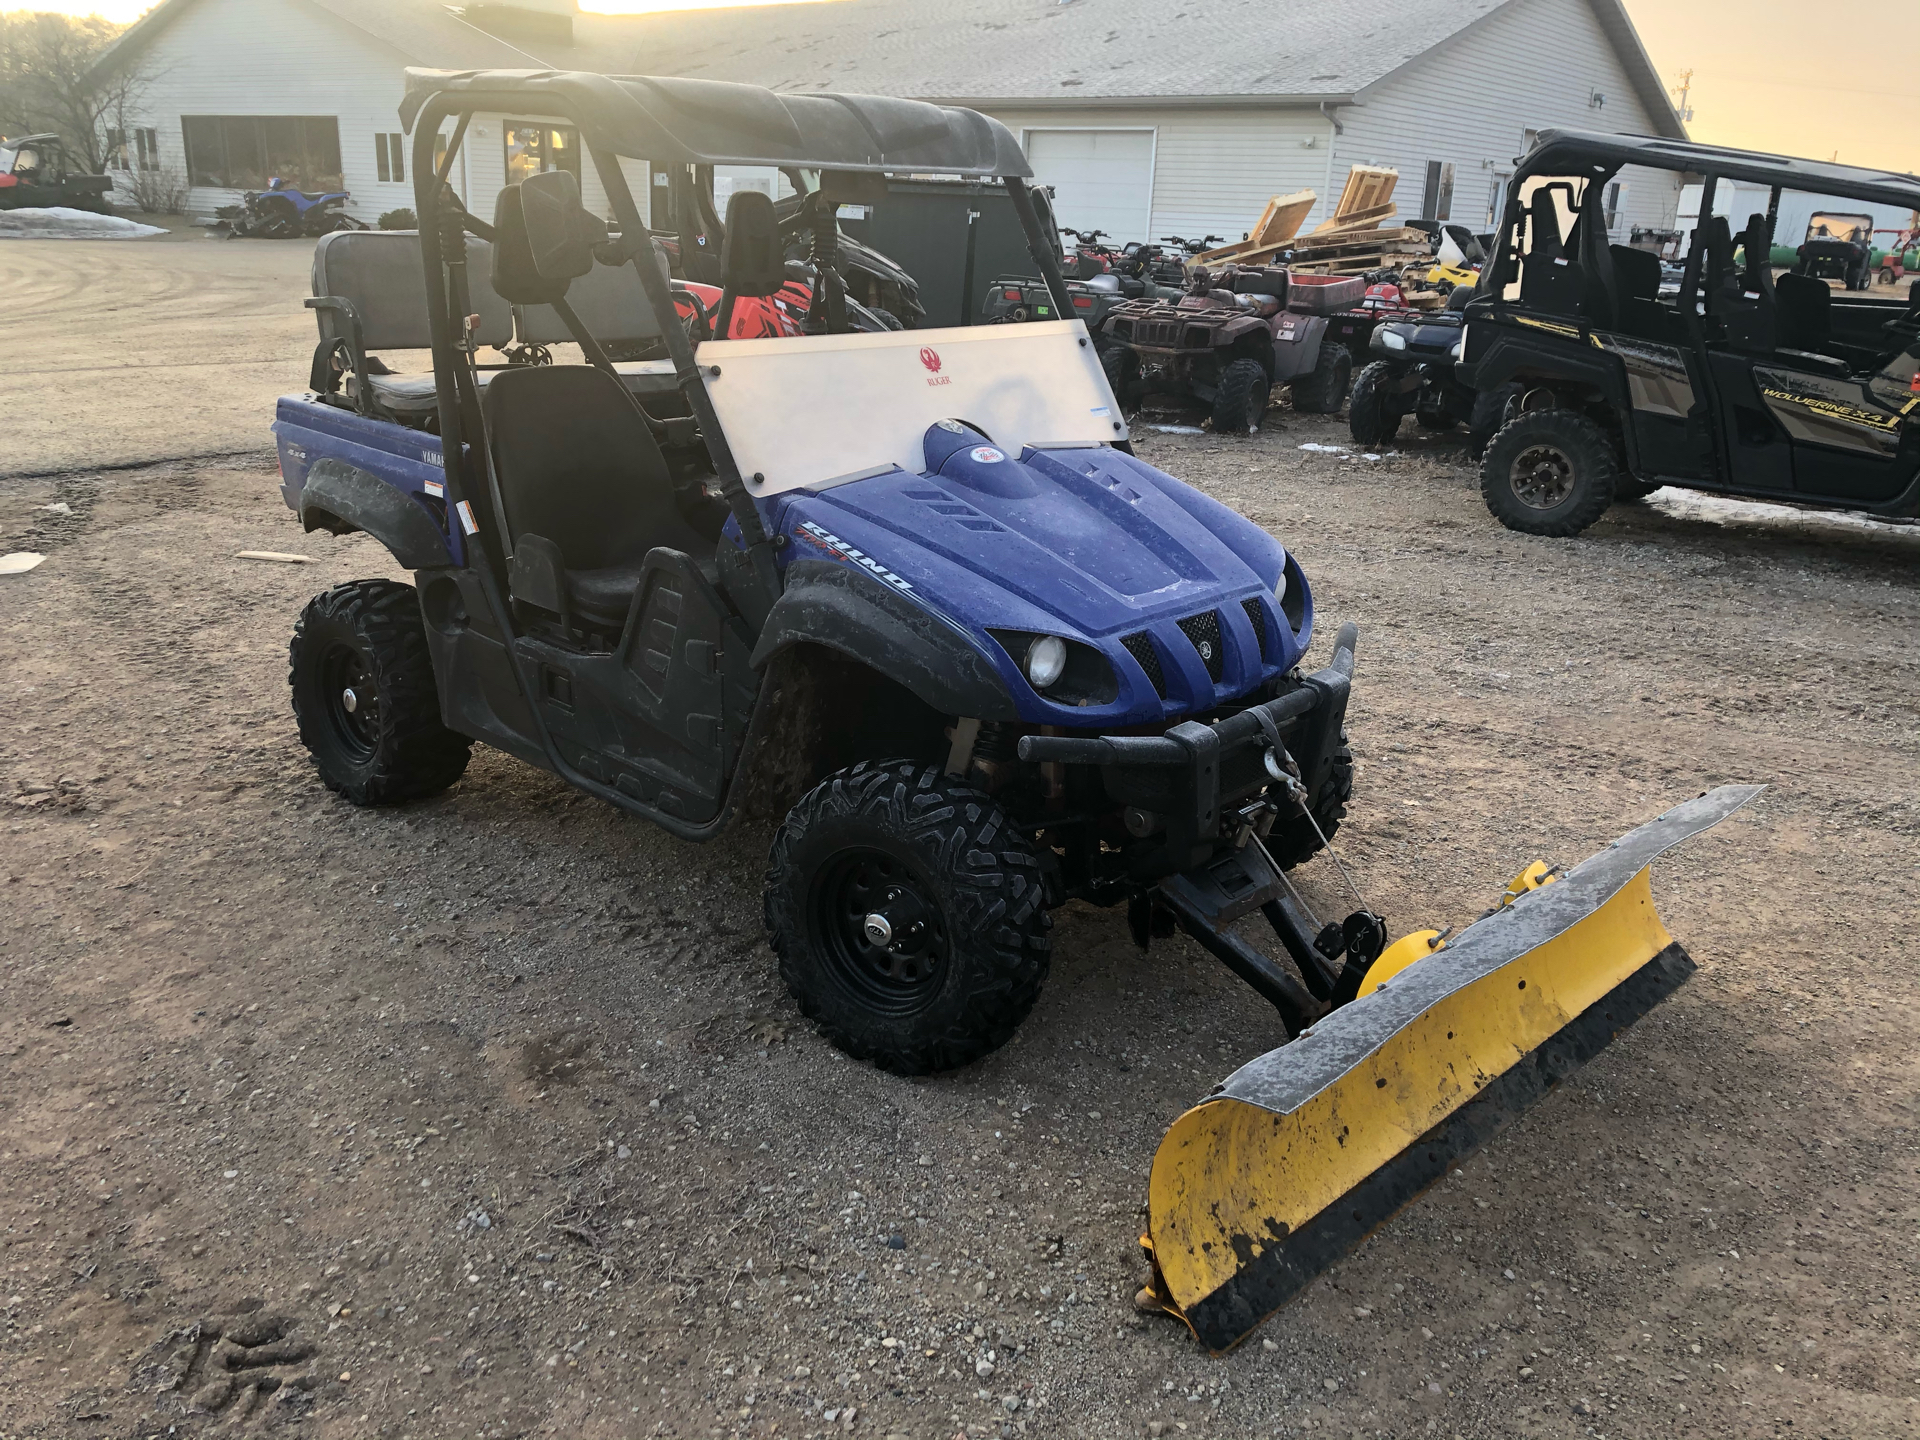 2012 Yamaha Rhino 700 FI Auto. 4x4 in Escanaba, Michigan - Photo 2